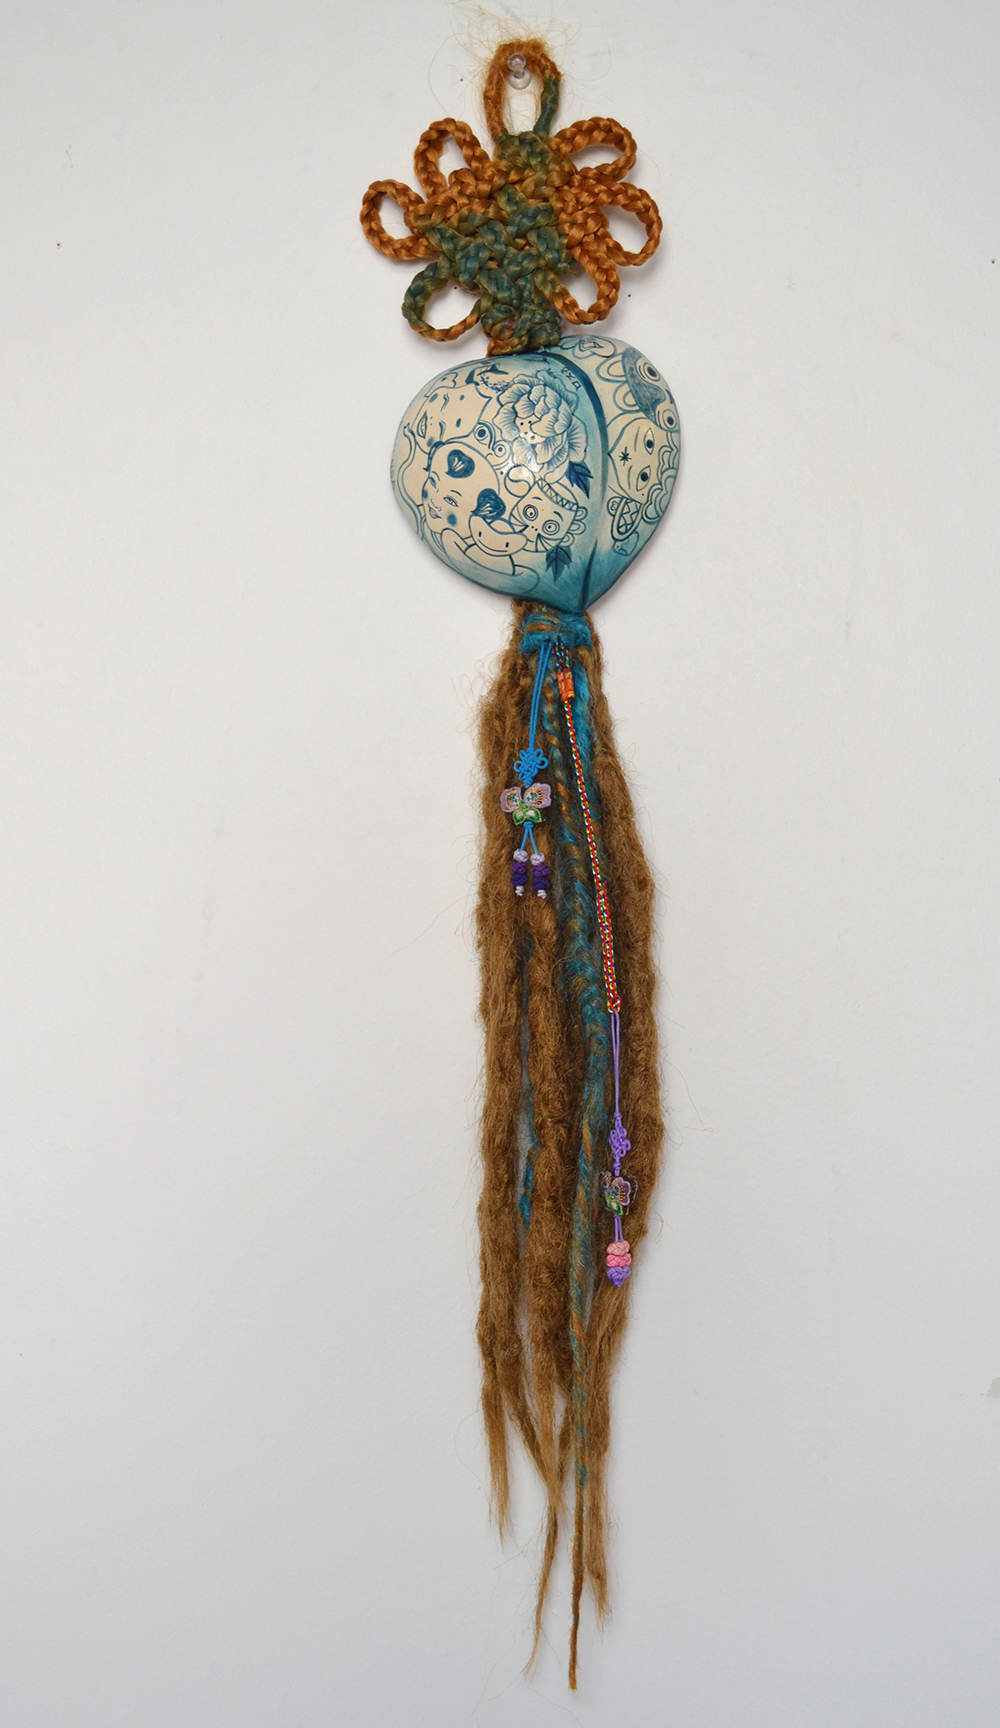 "Jiha Moon  Gloria  Ceramic, hand-knotted synthetic hair, acrylic paint, found objects 27"" x 5"" x 1.5"" 2013"